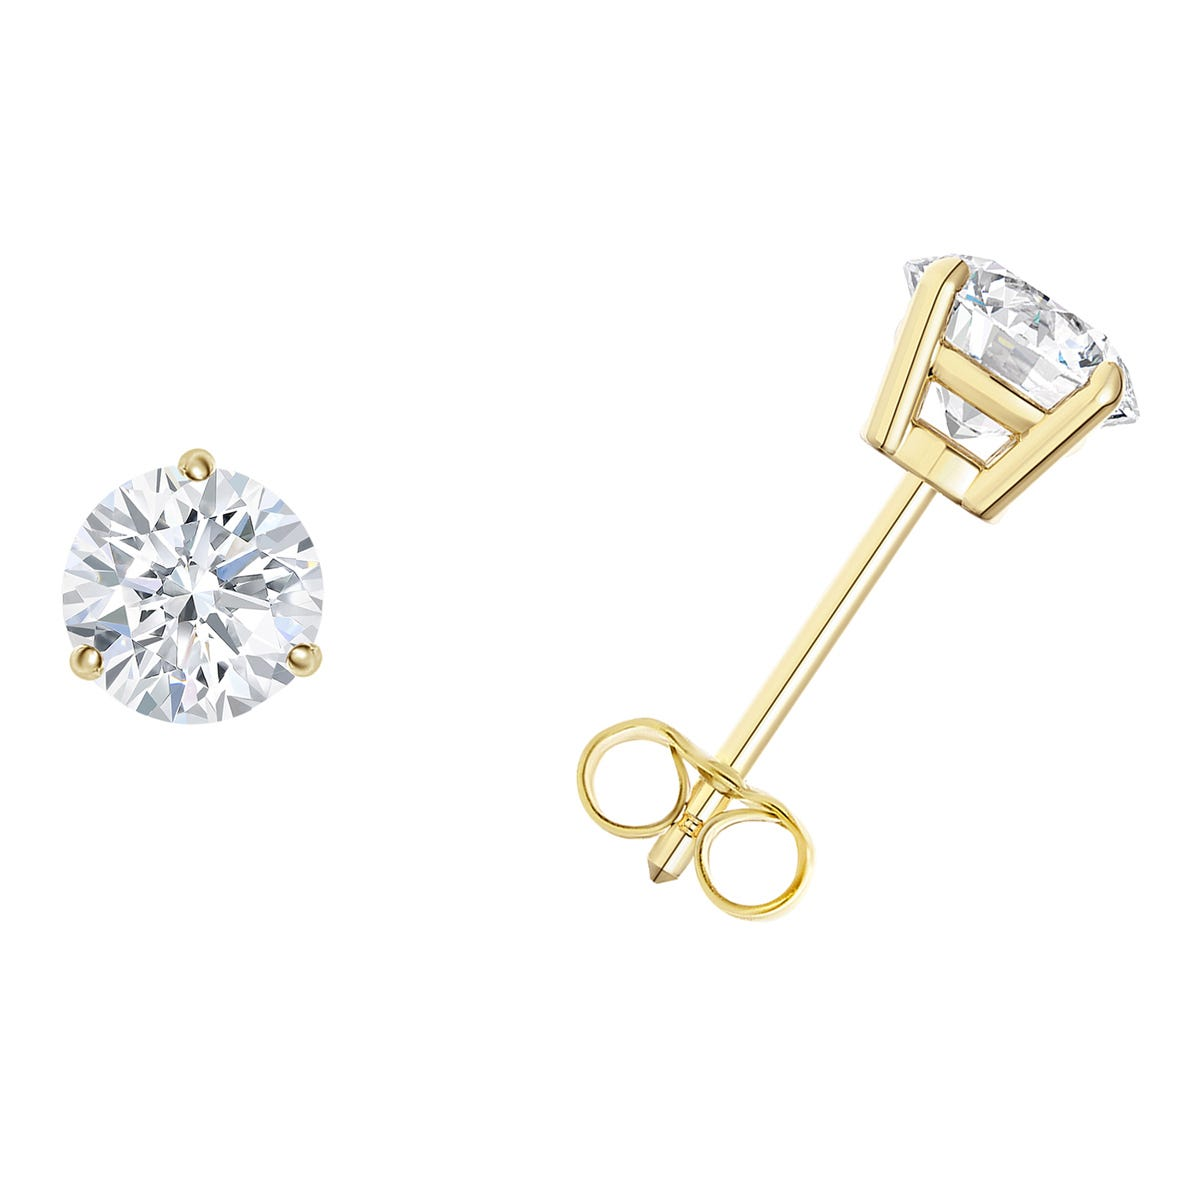 1/5 CTTW Round Diamond Solitaire Stud Earrings in 14K Yellow Gold 3-Prong IGI Certified I2